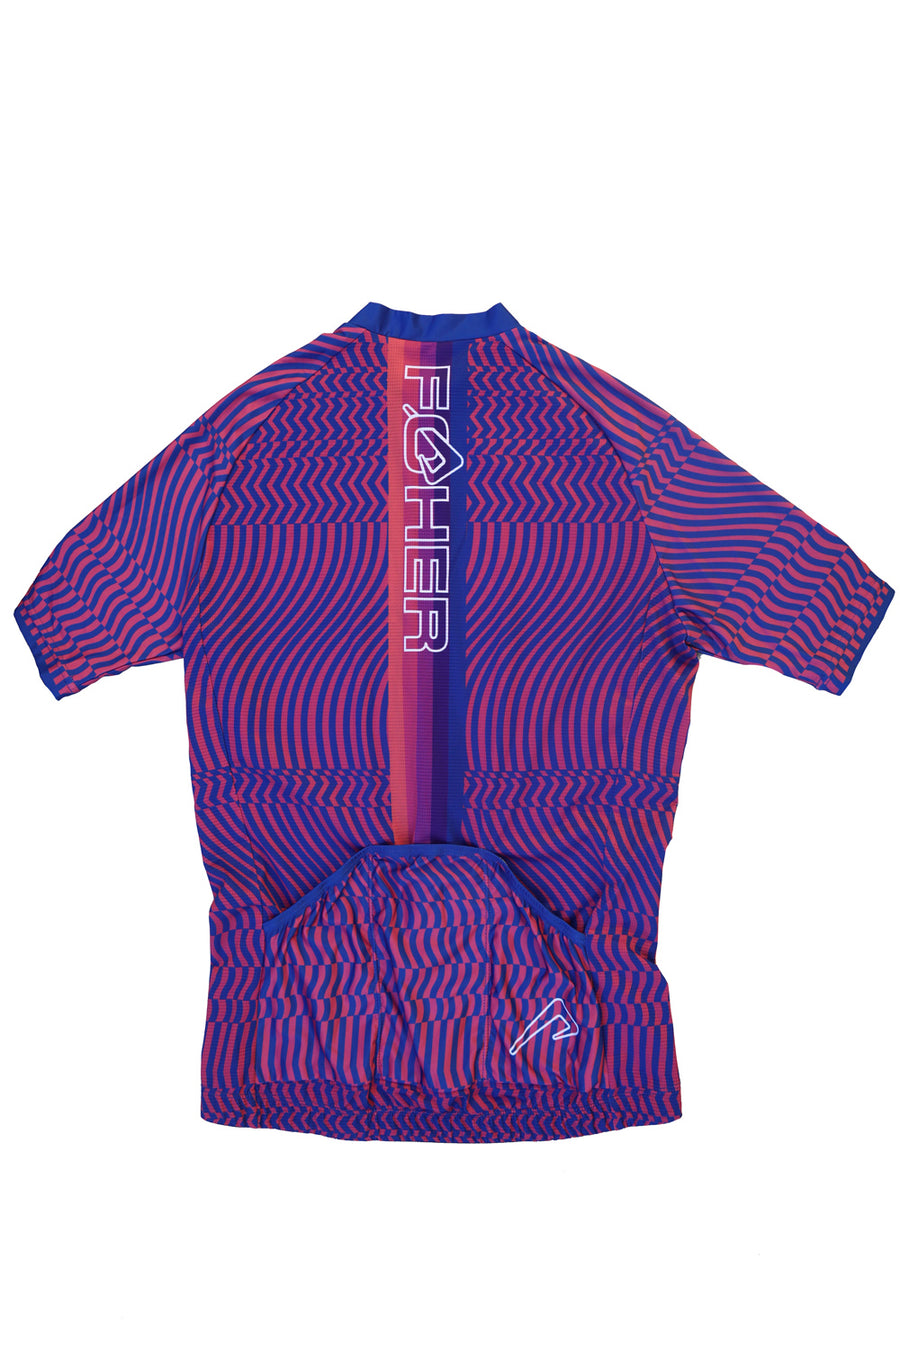 Women's Glitch Cycle Jersey